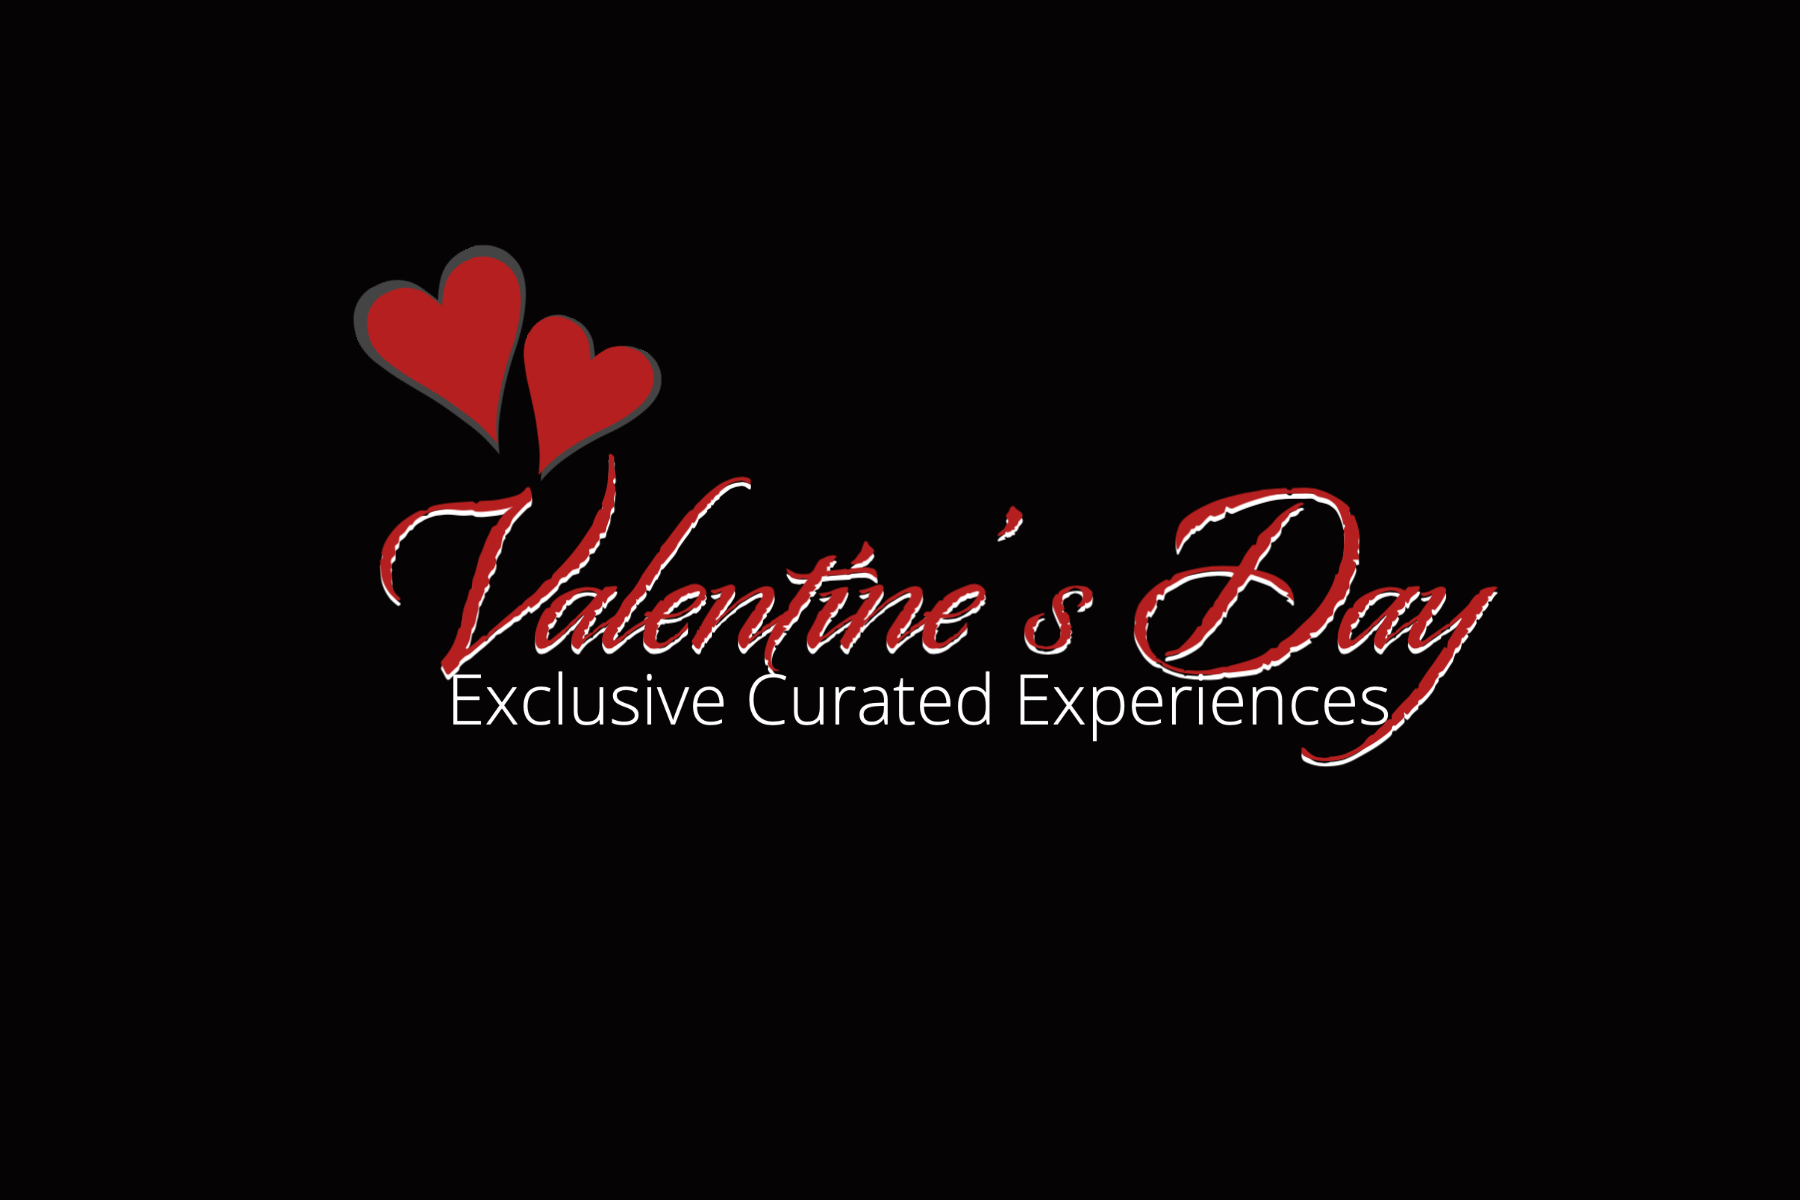 Valentine's Day Exclusive Curated Experiences